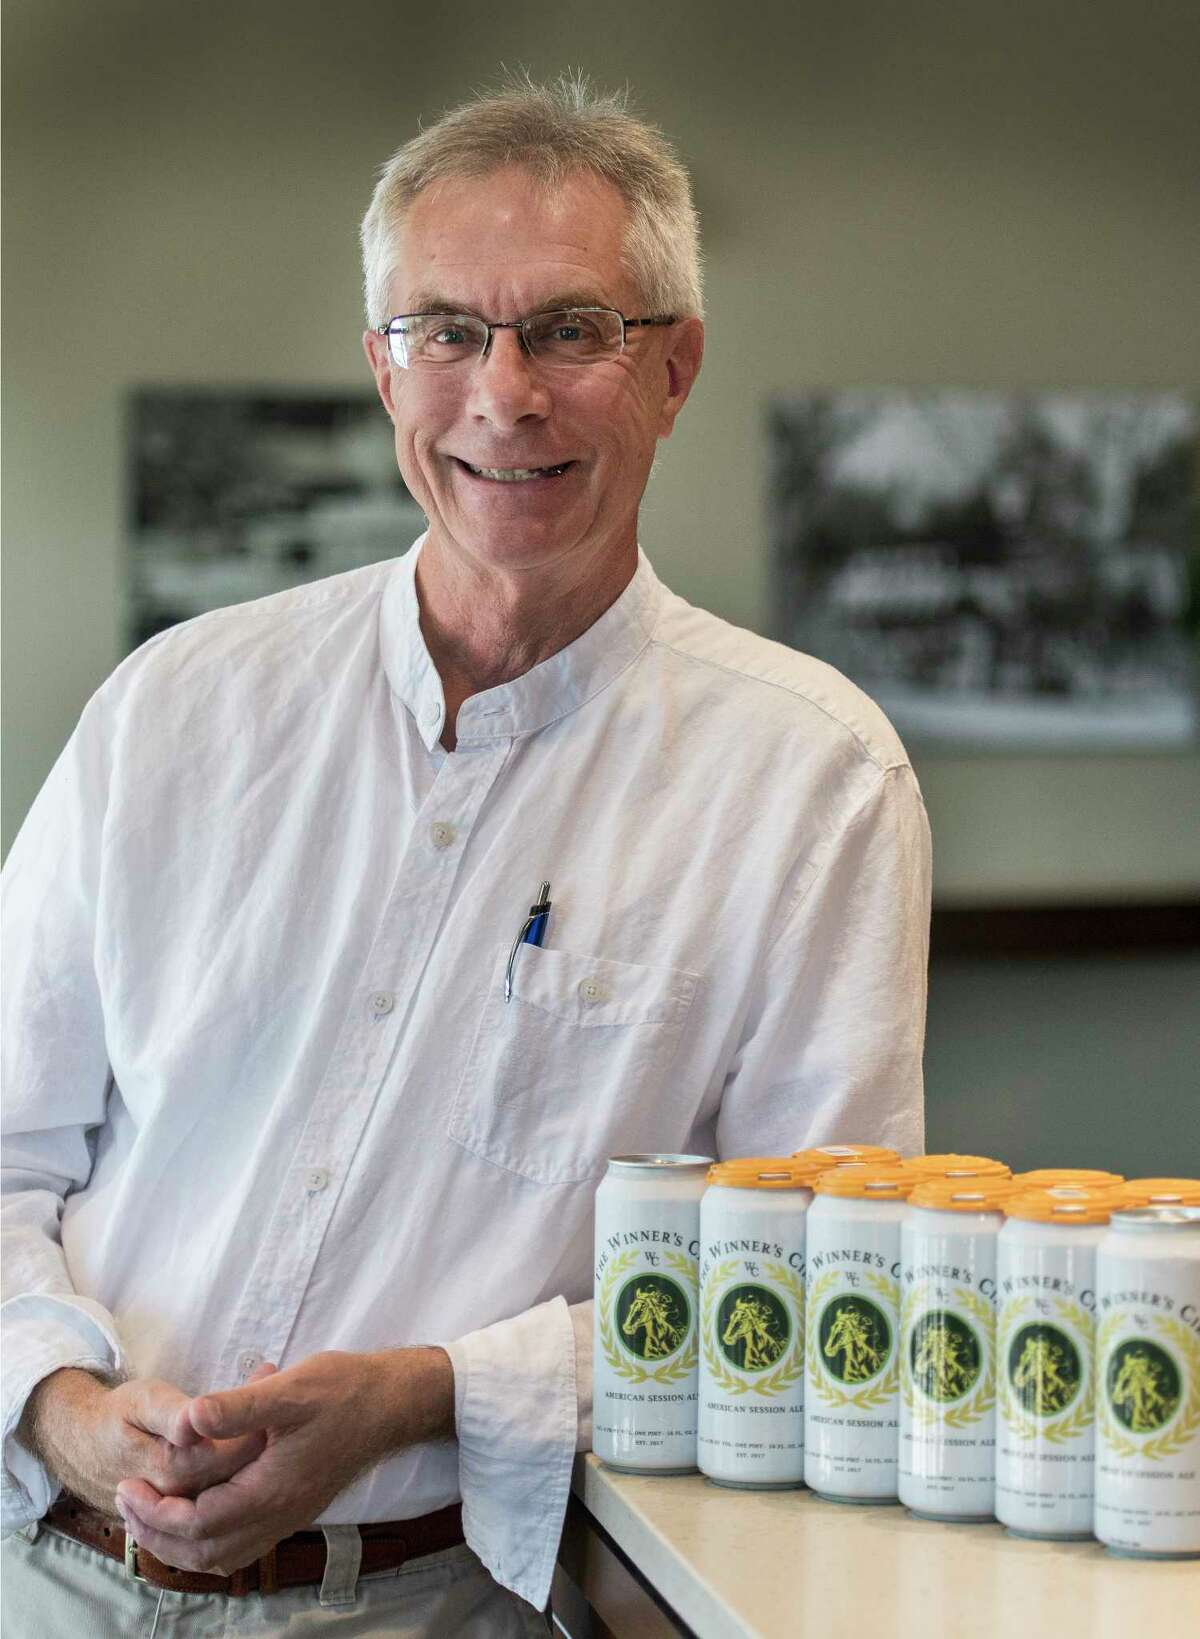 Brewmaster Bill Newman and his new product The Winner's Circle beer at the offices of DeCrescente Distributing Thursday July 12, 2018 in Mechanicville, N.Y. (Skip Dickstein/Times Union)